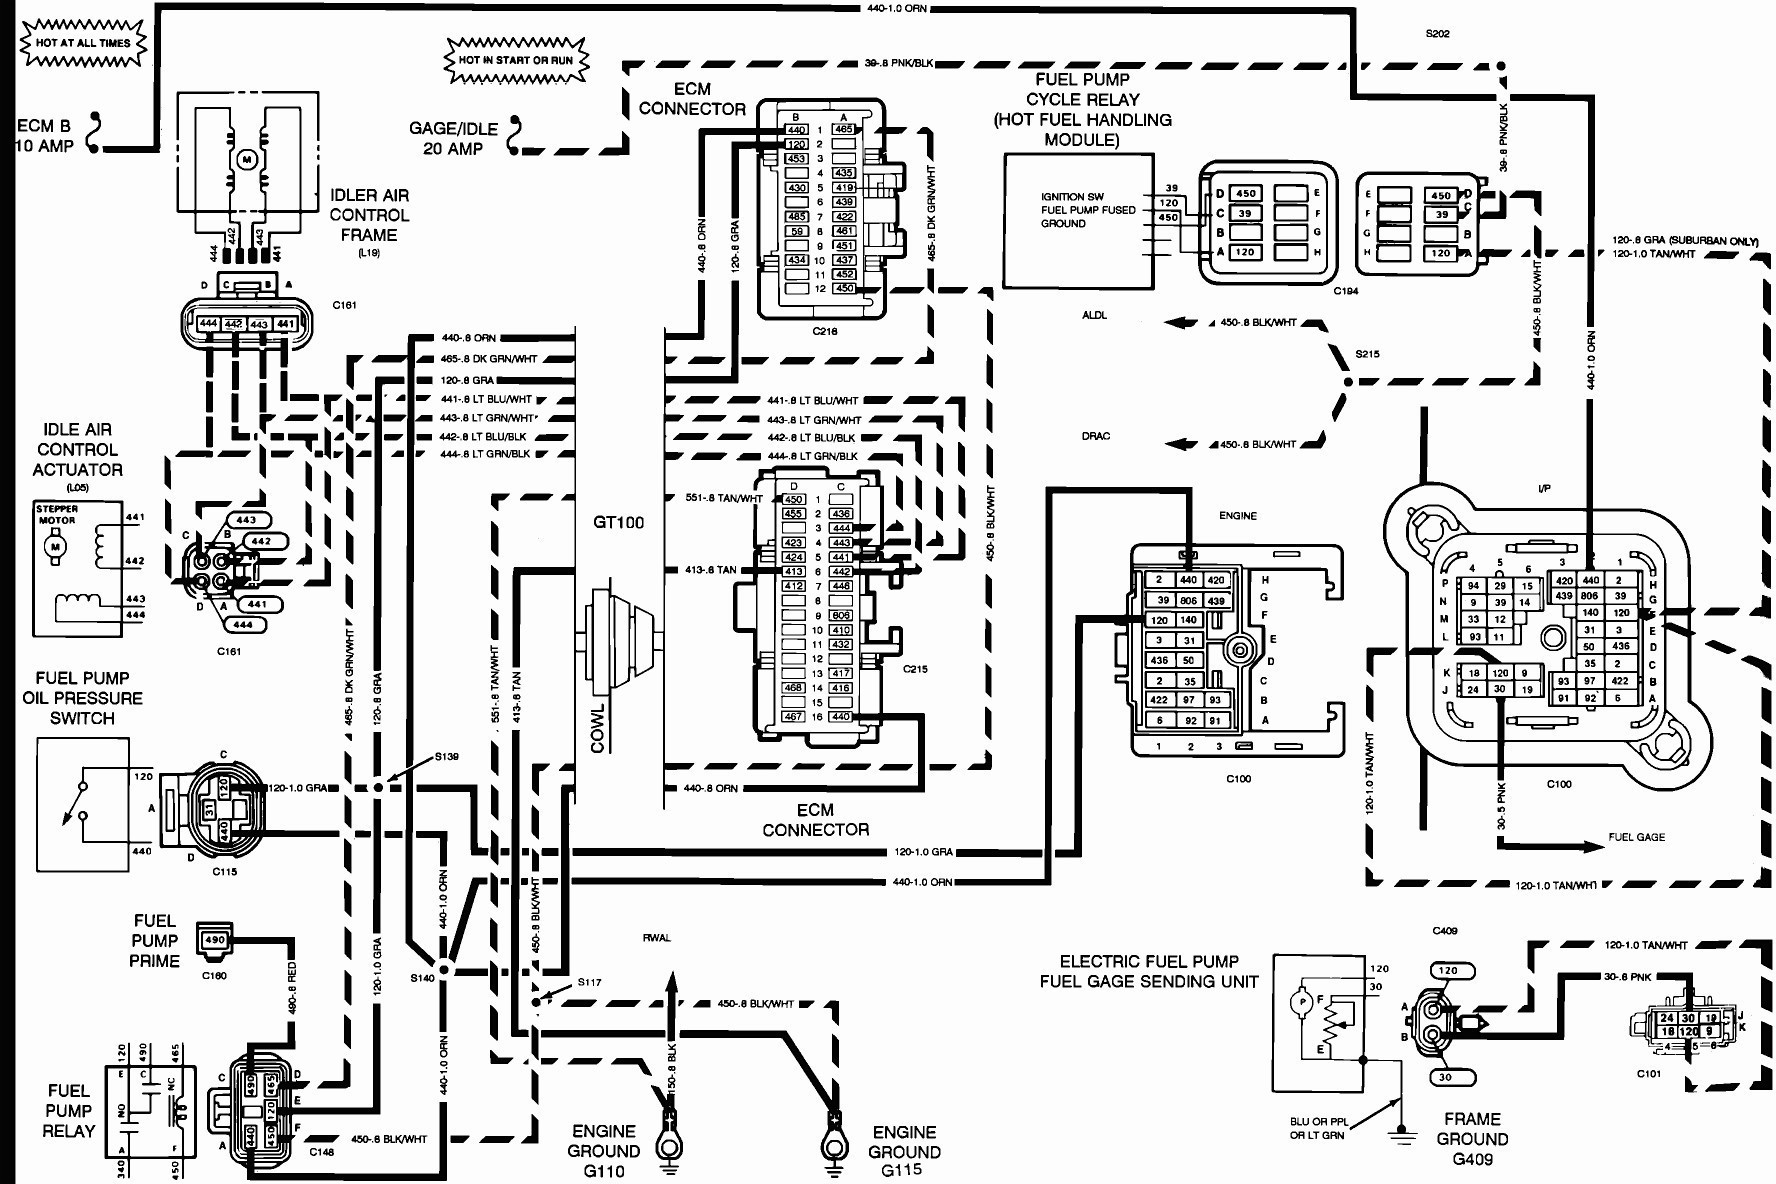 Ford F53 Motorhome Chassis Wiring Diagram Wiring Diagram